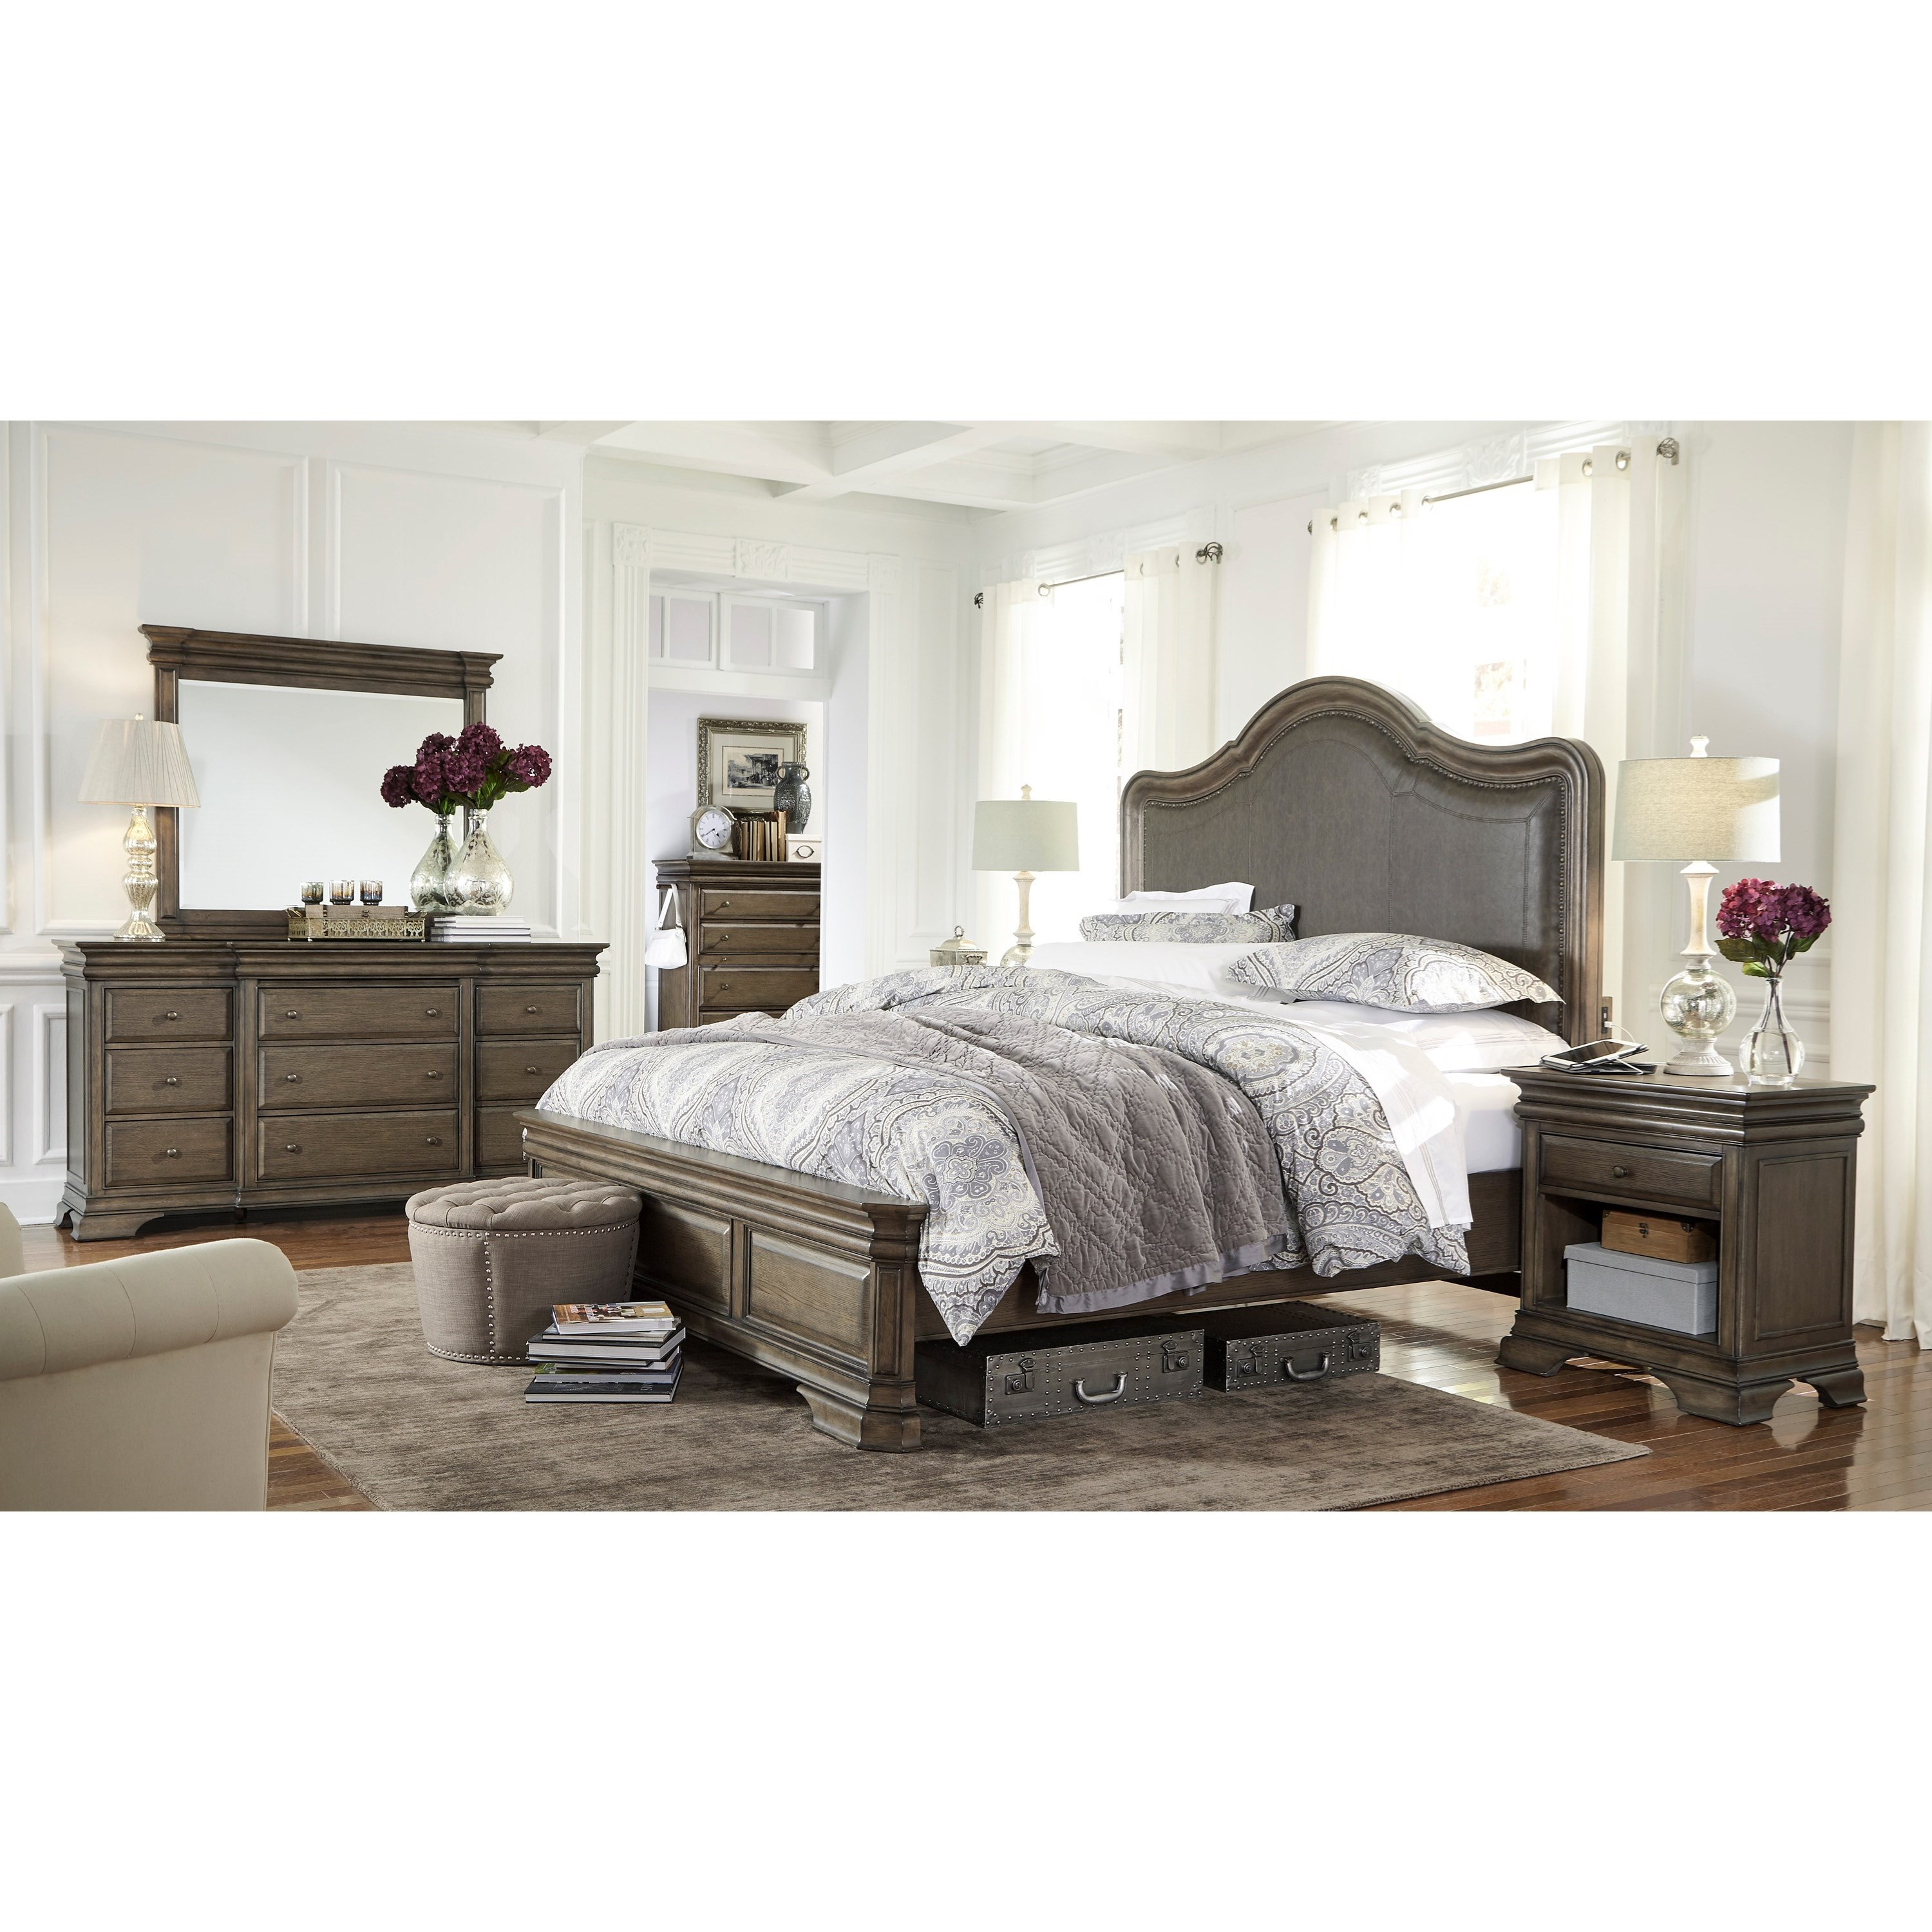 Aspenhome Arcadia King Bedroom Group - Item Number: I92 K Kedroom Group 3